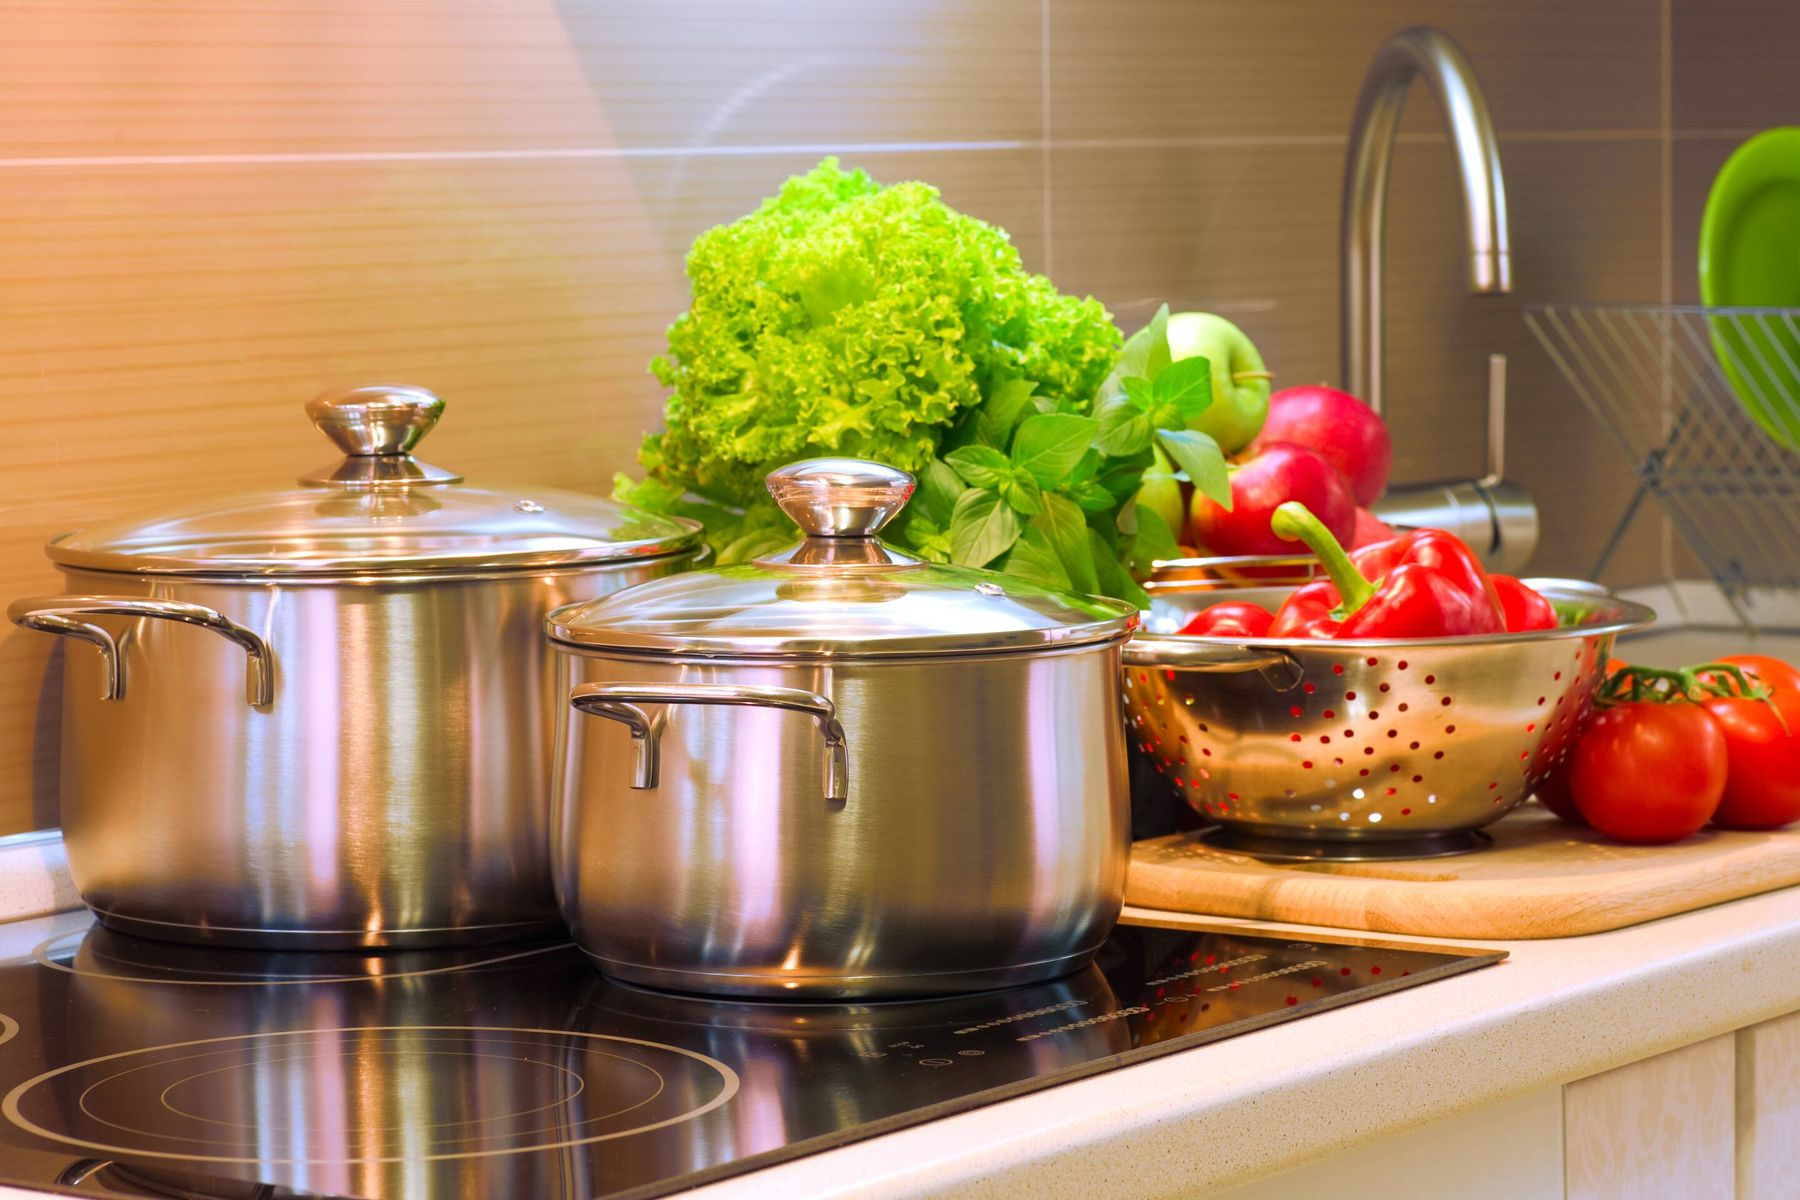 Here's How You Can Keep Your Stainless Steel Utensils Spotless